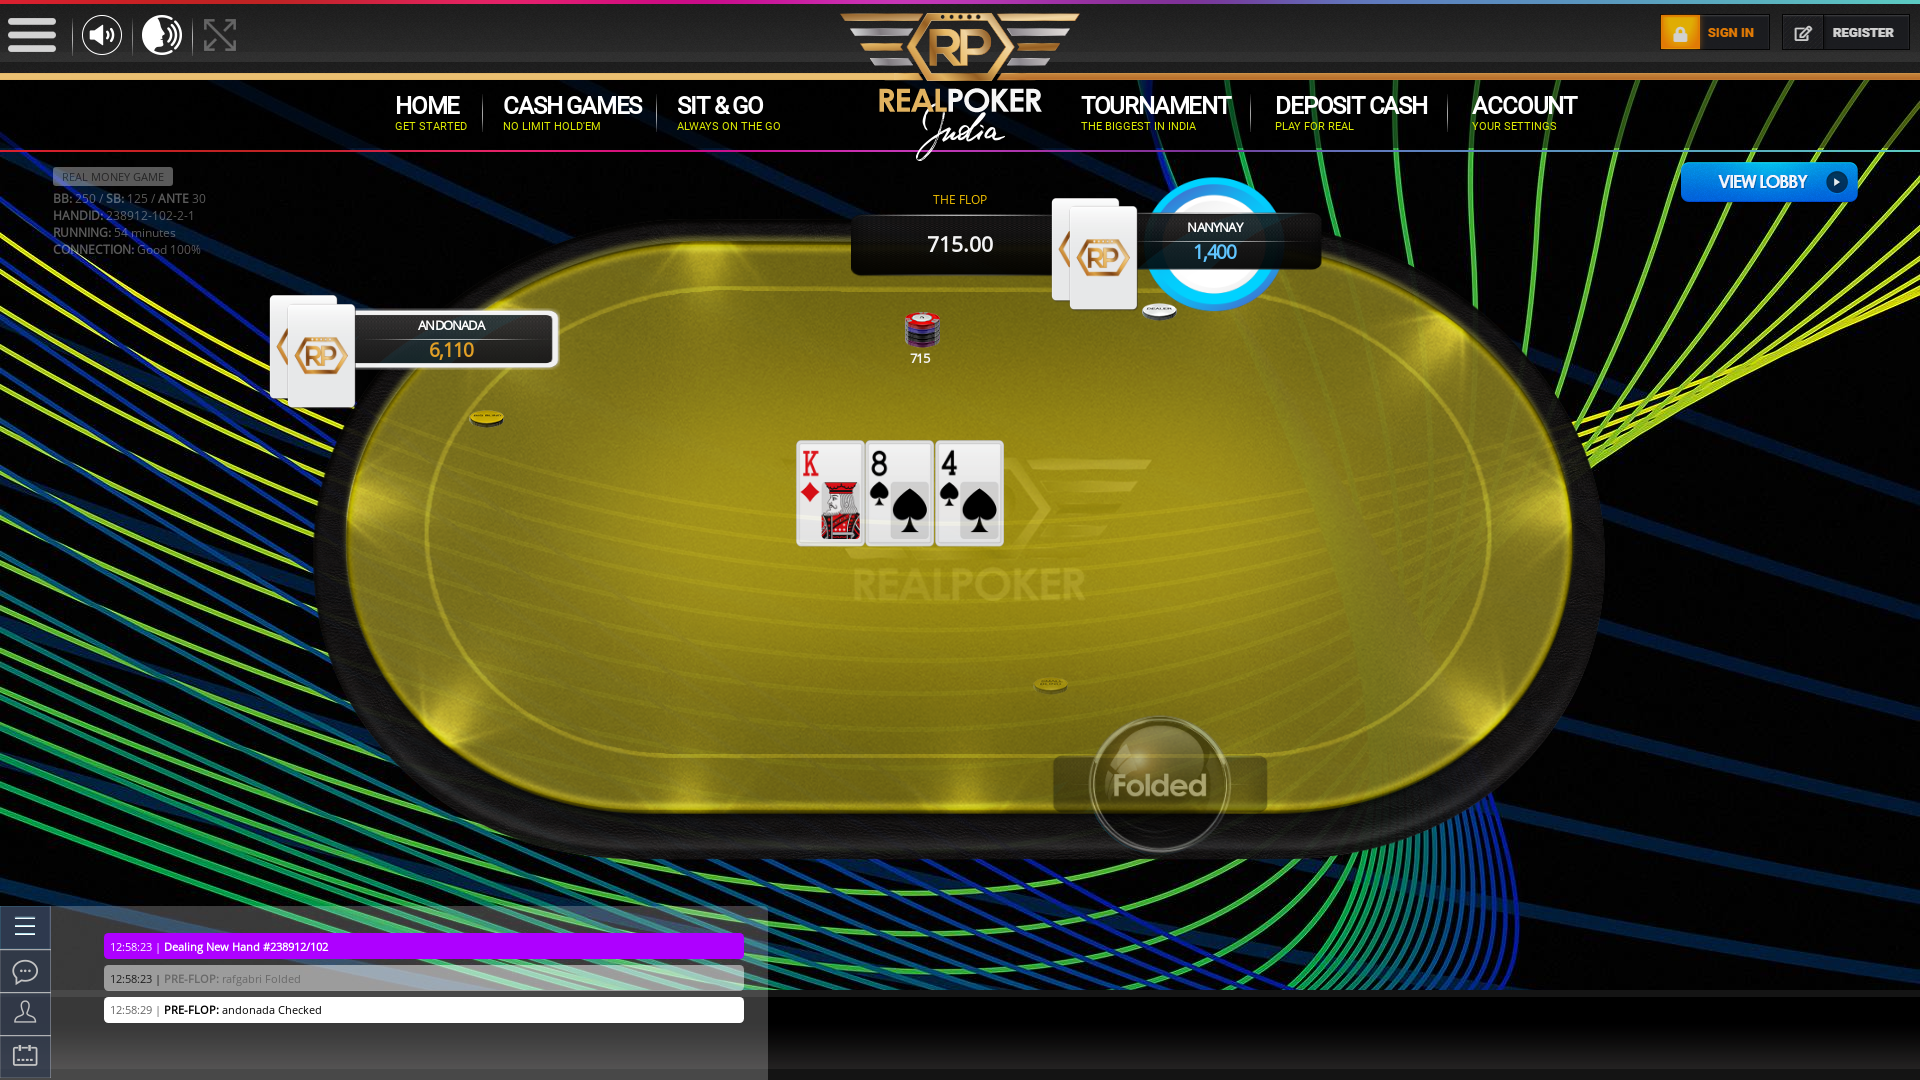 10 player texas holdem table at real poker with the table id 238912